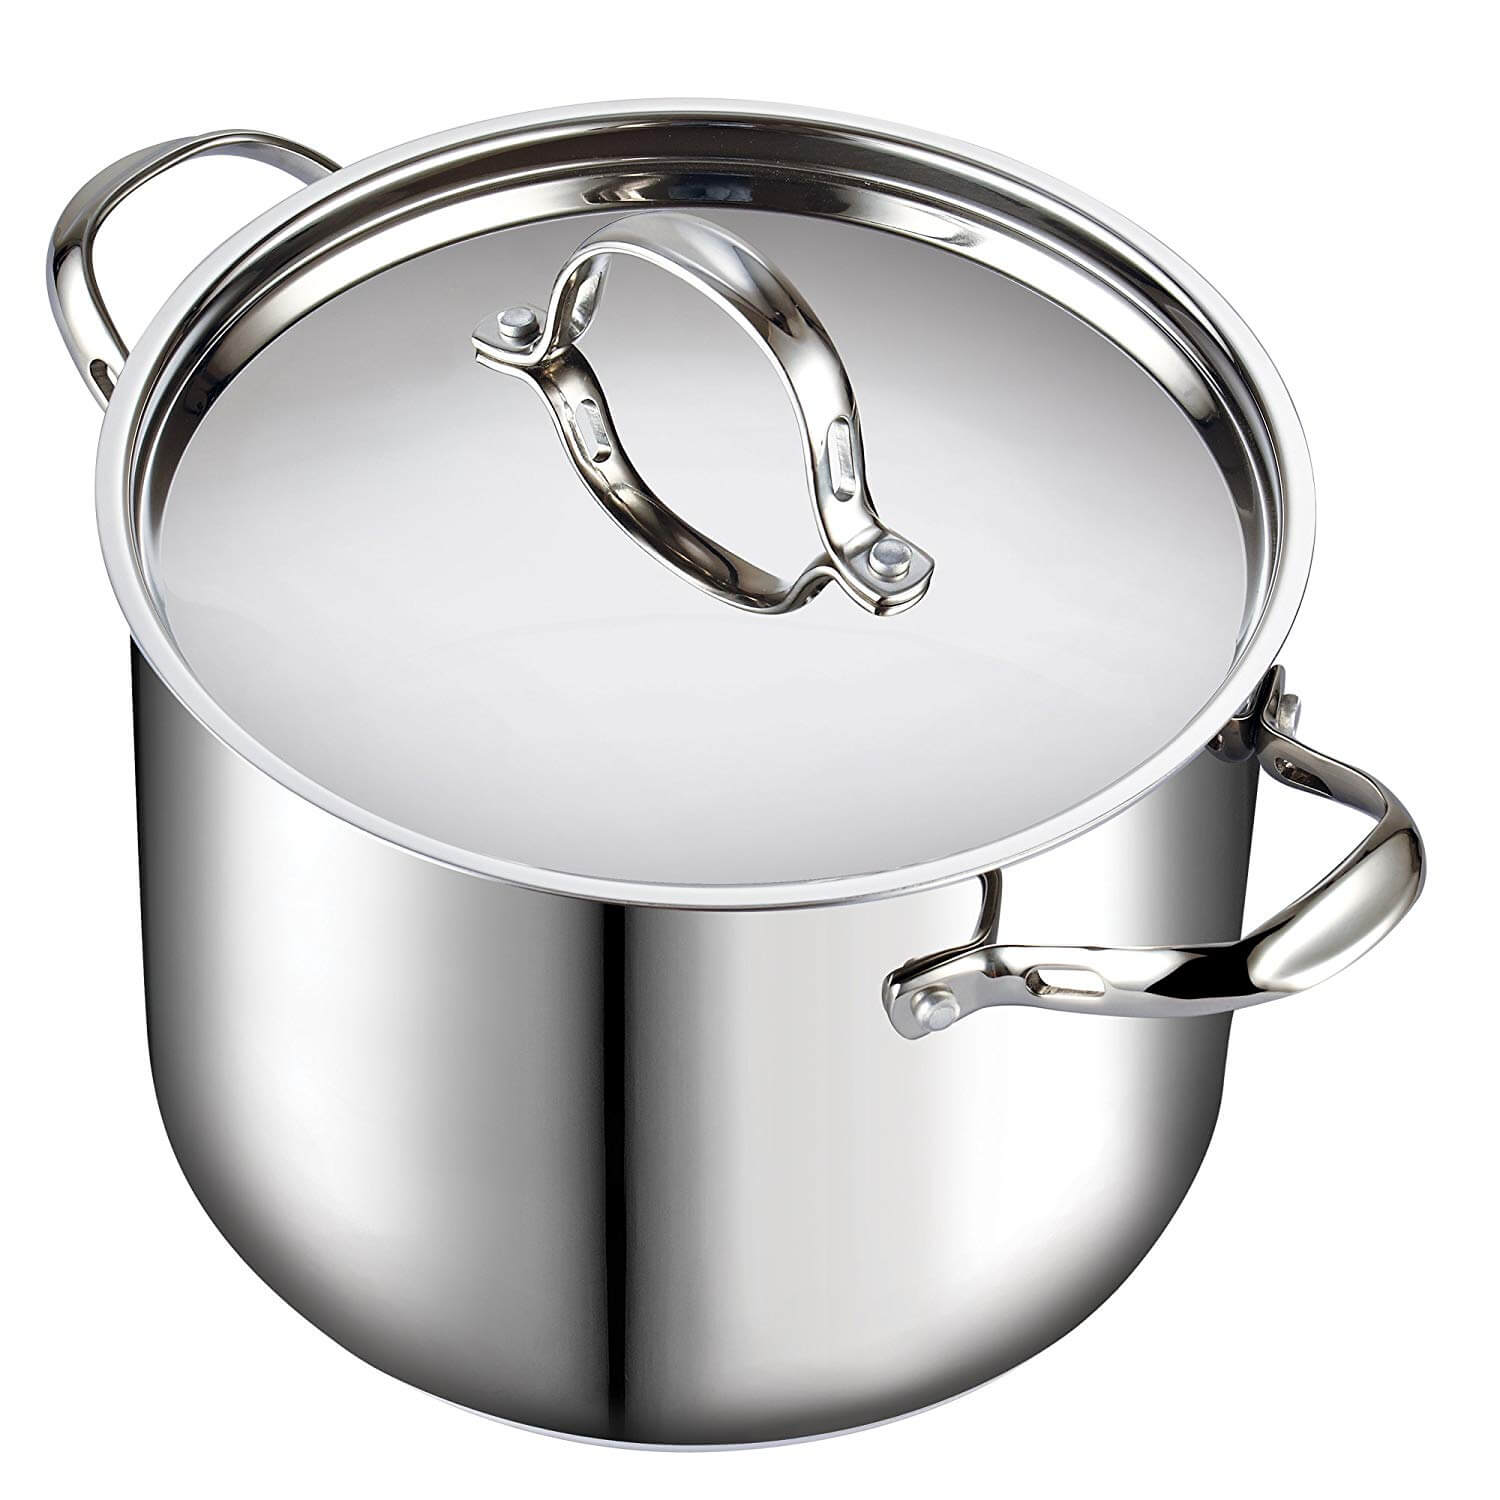 Cooks Standard 12-Quart Classic Stainless Steel Stockpot